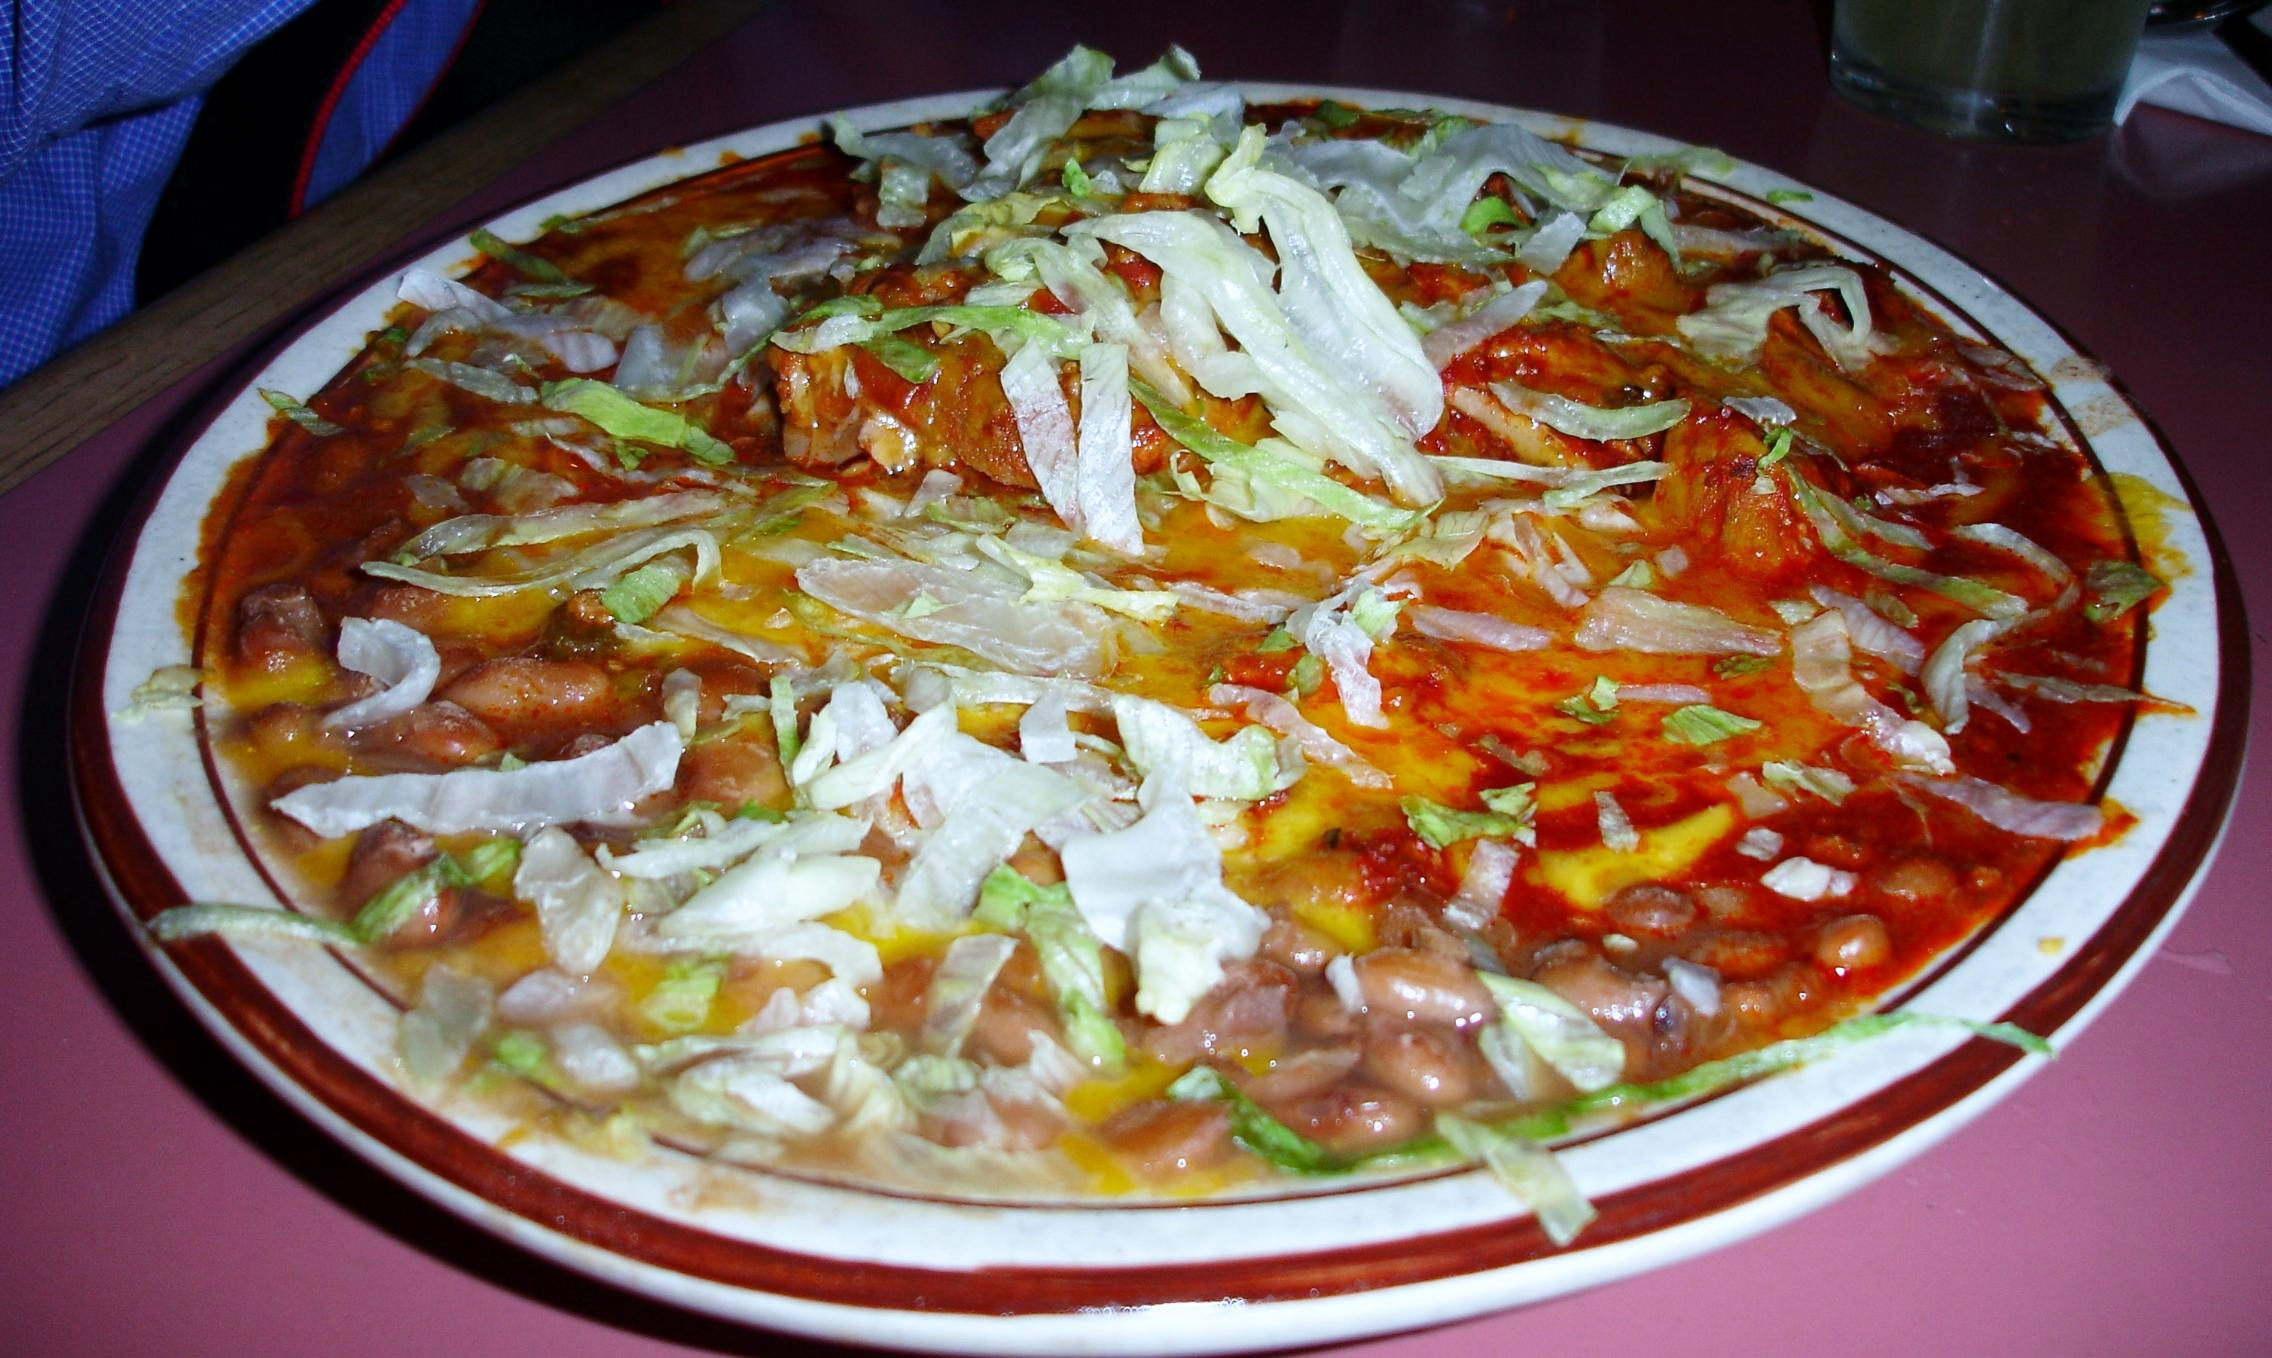 You can also get your adovada as part of a stacked enchilada plate.